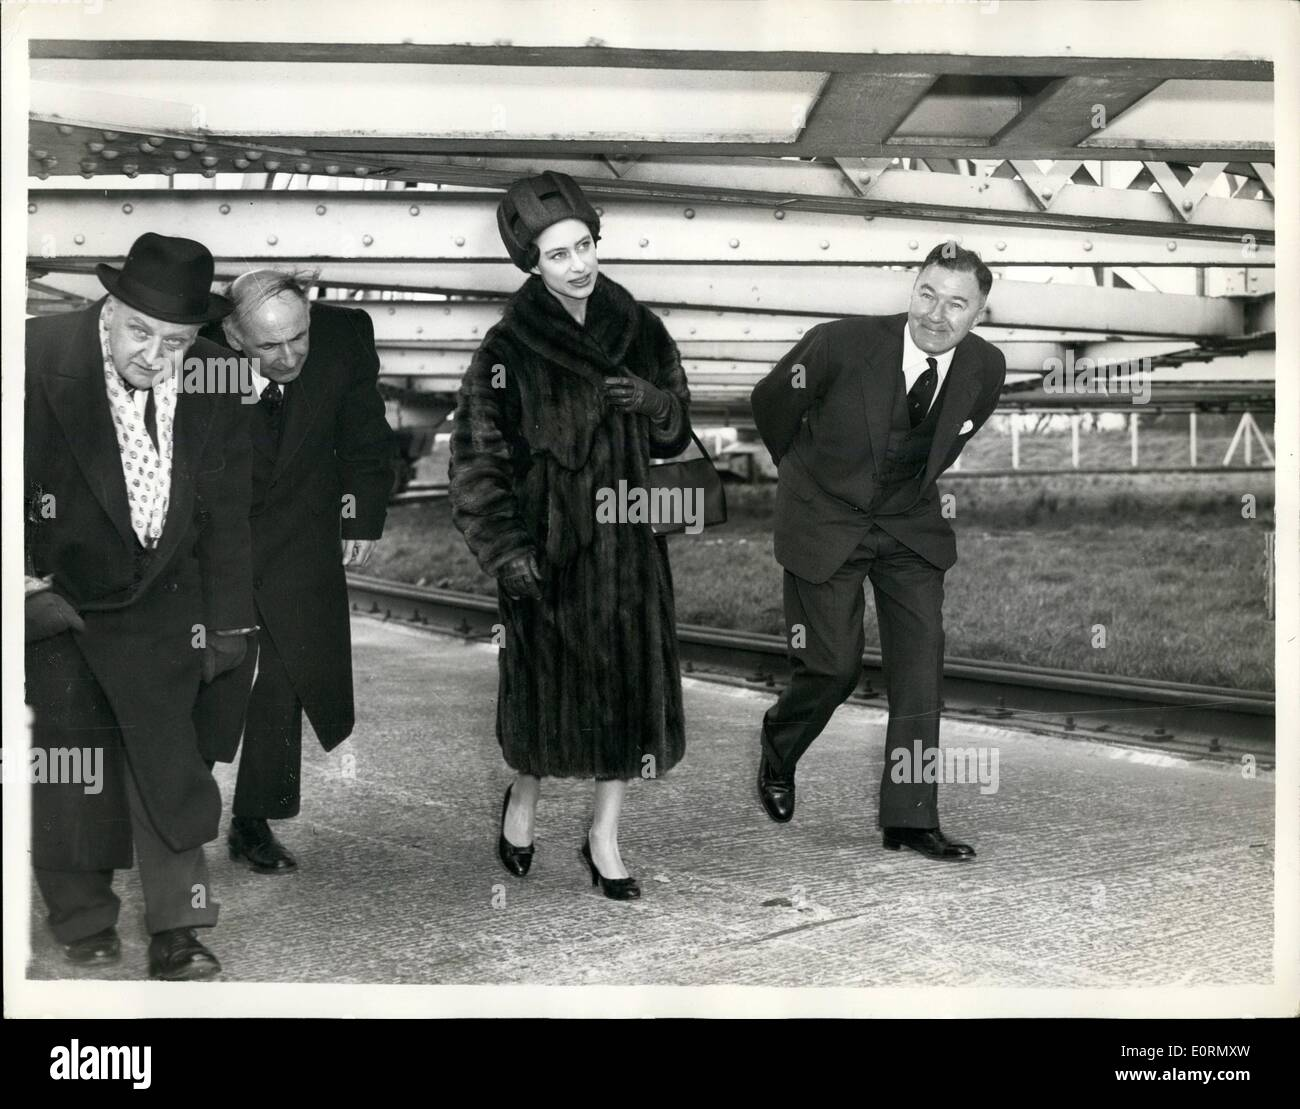 Mar. 03, 1960 - Princess Margaret Visits Jodrell Bank Radio Telescope: H.R.H. Princess Margaret this morning paid a visit to Jodrell Bank Radio Telescope where she listened to recordings of the signals transmitted by the newes American satellite - Pioneer V. Photo shows Princess Margaret seen ducking with other members of the party - beneath one of the wheel cradles of the giant telescope - at Jodrell Bank today. - Stock Image